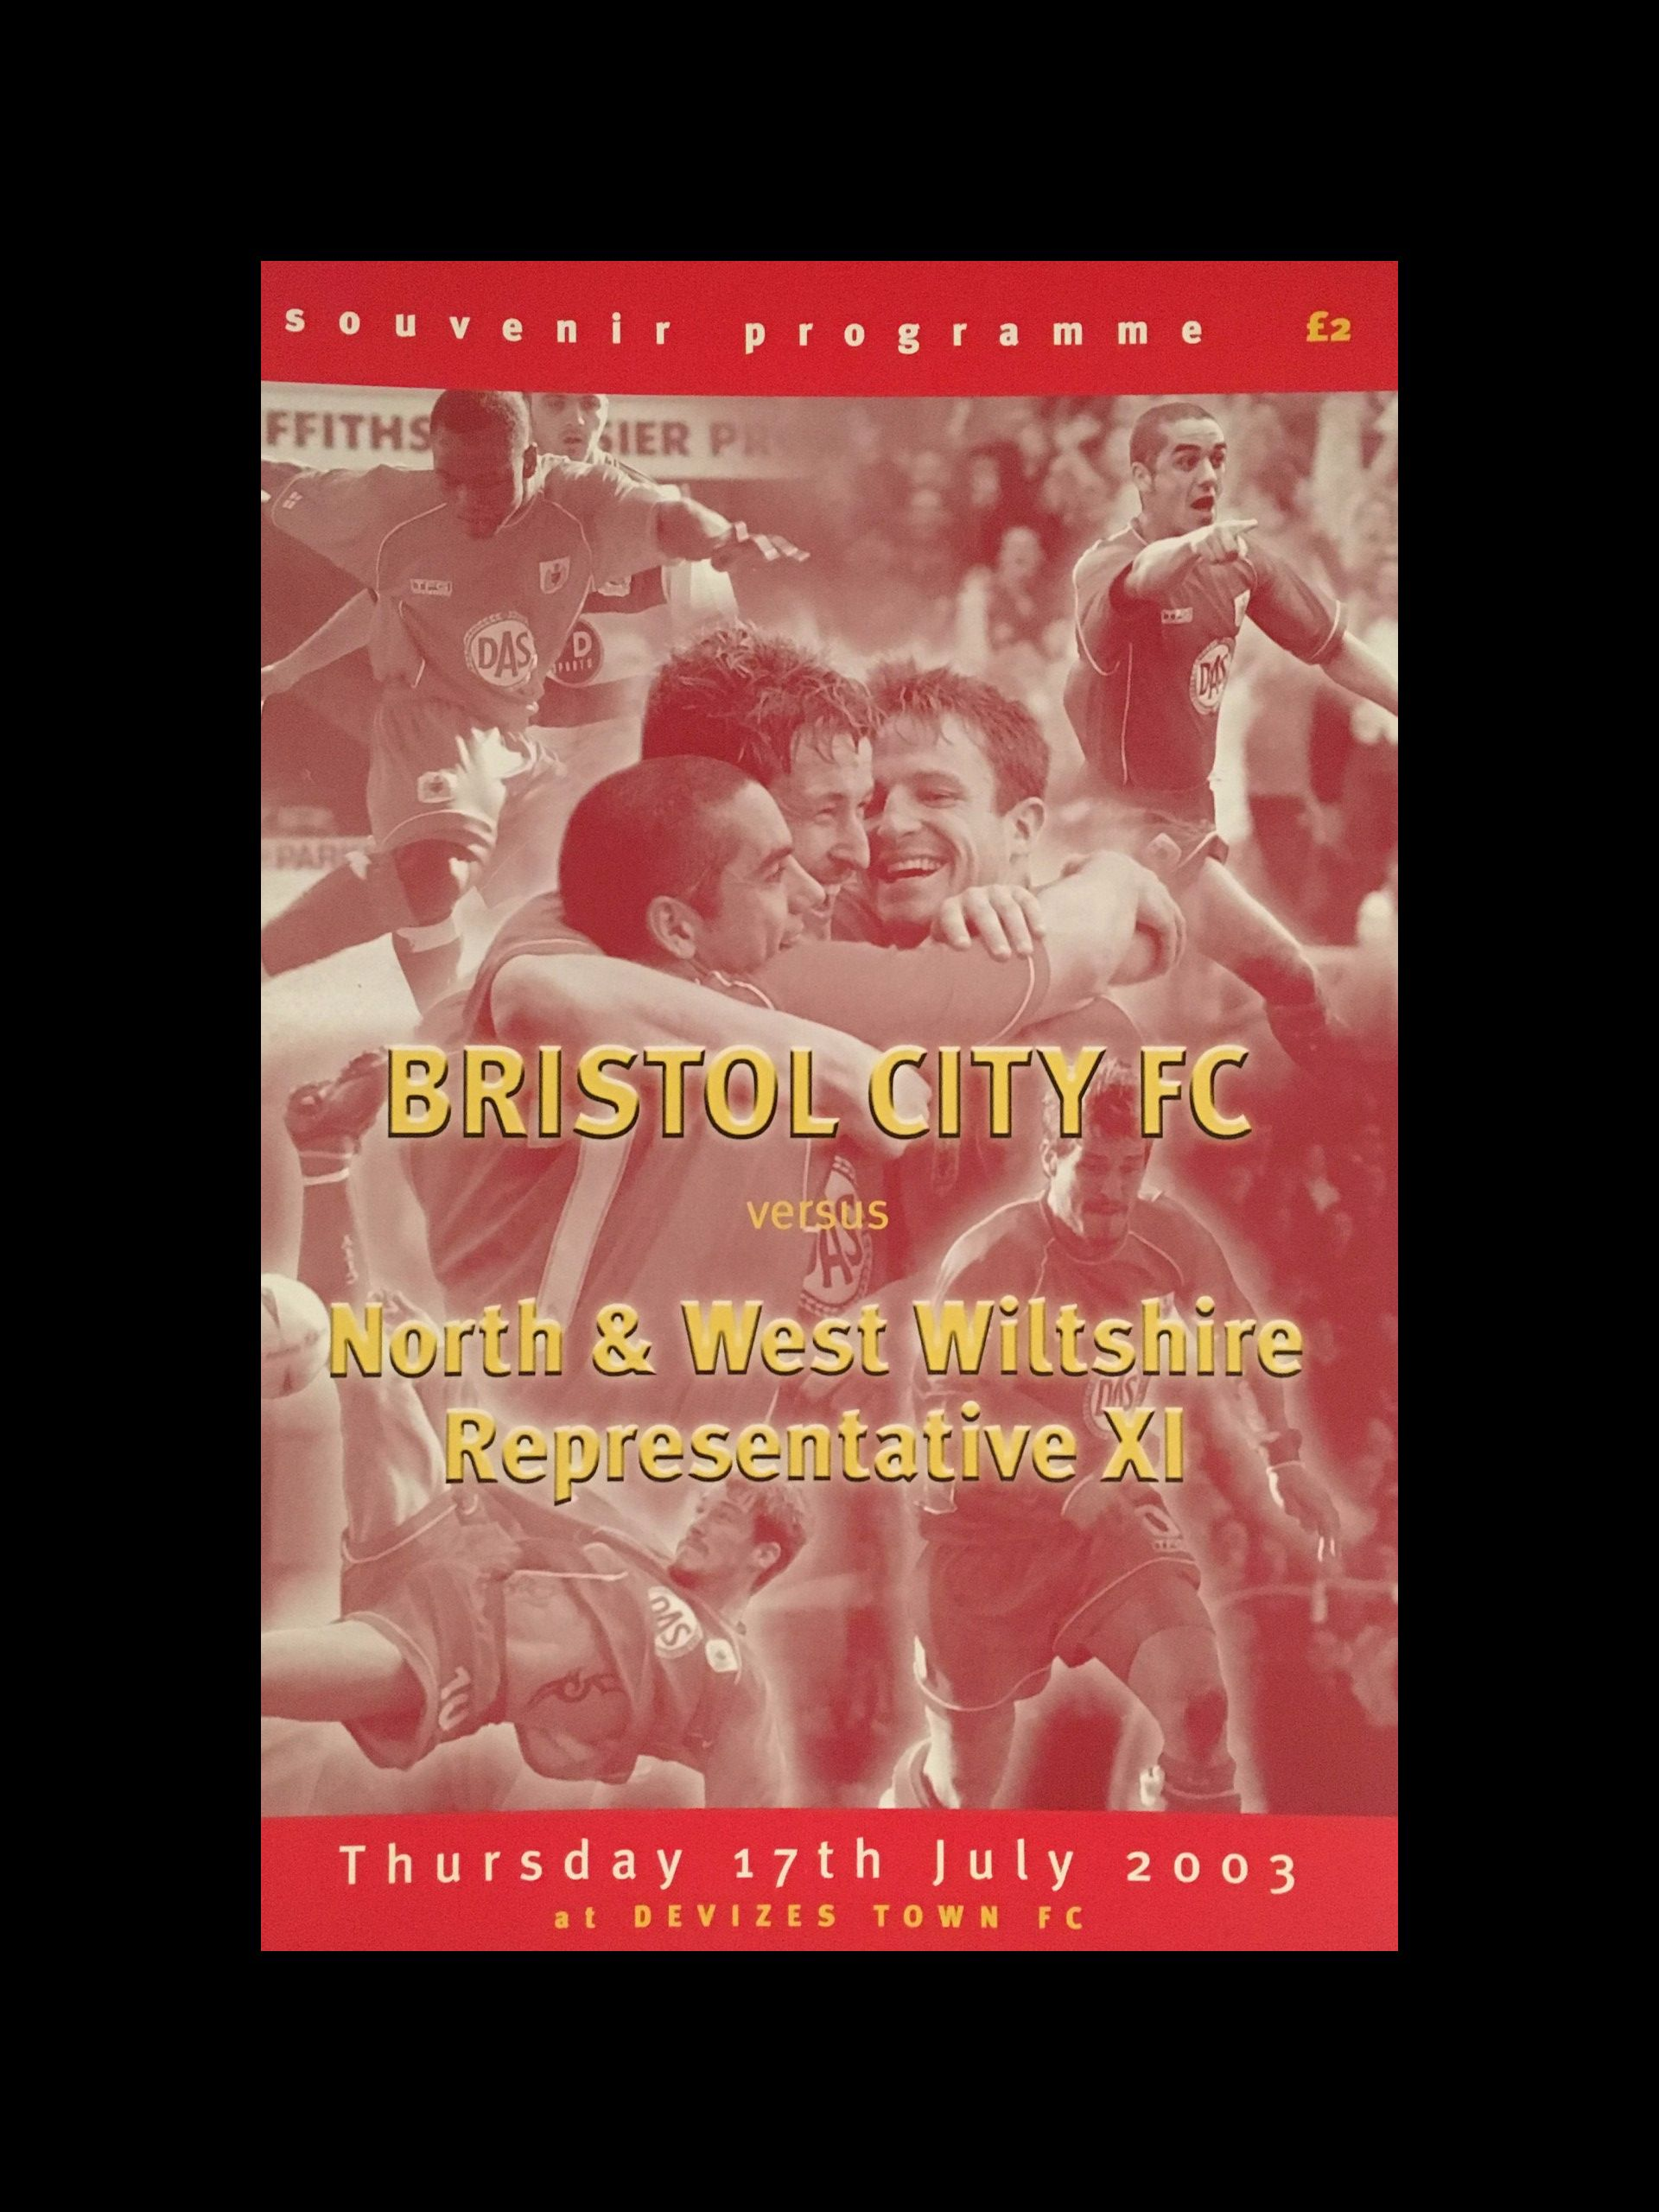 North & West Wiltshire Representative XI v Bristol City 17-07-2003 Programme